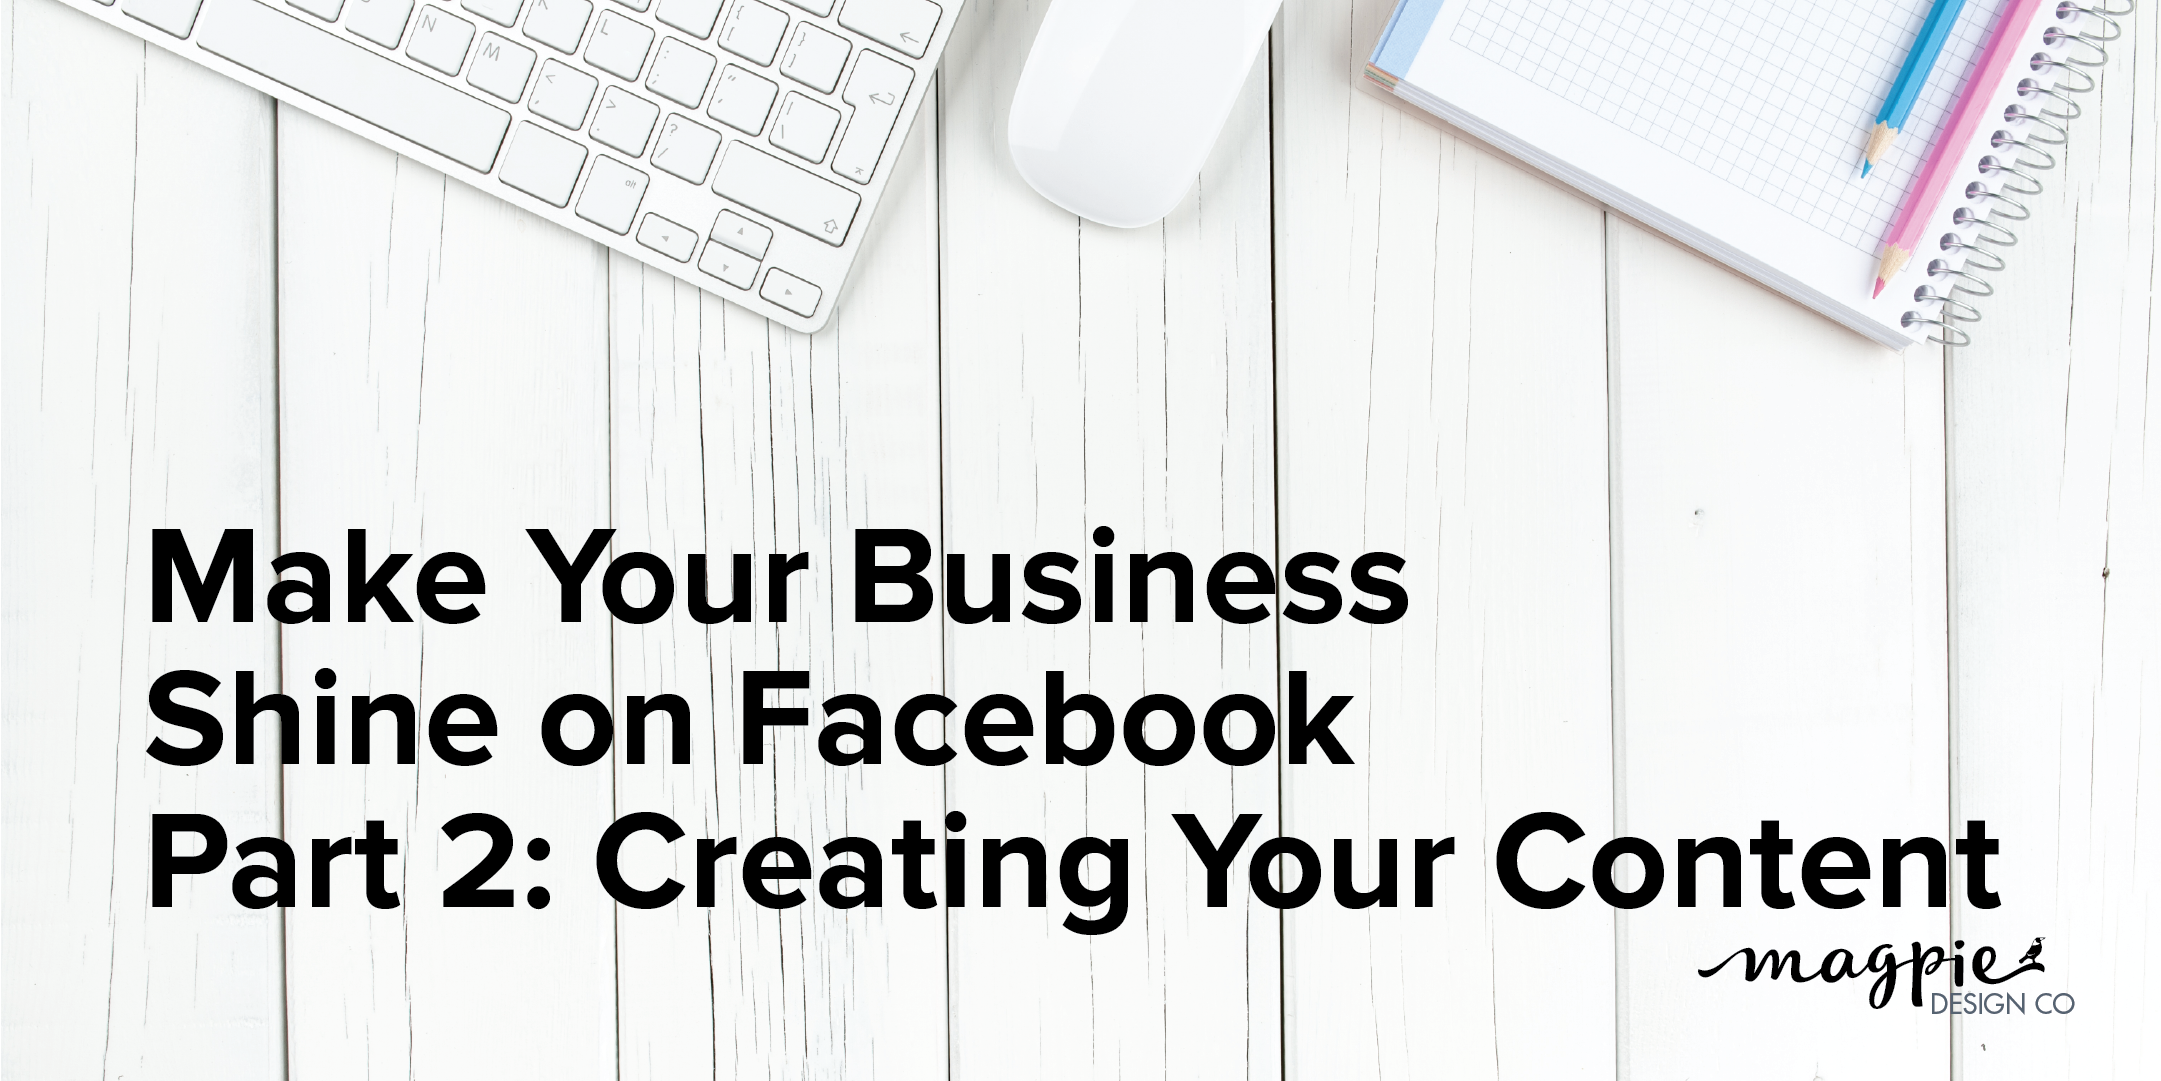 Make Your Business Shine on Facebook - Part 2: Creating Your Content